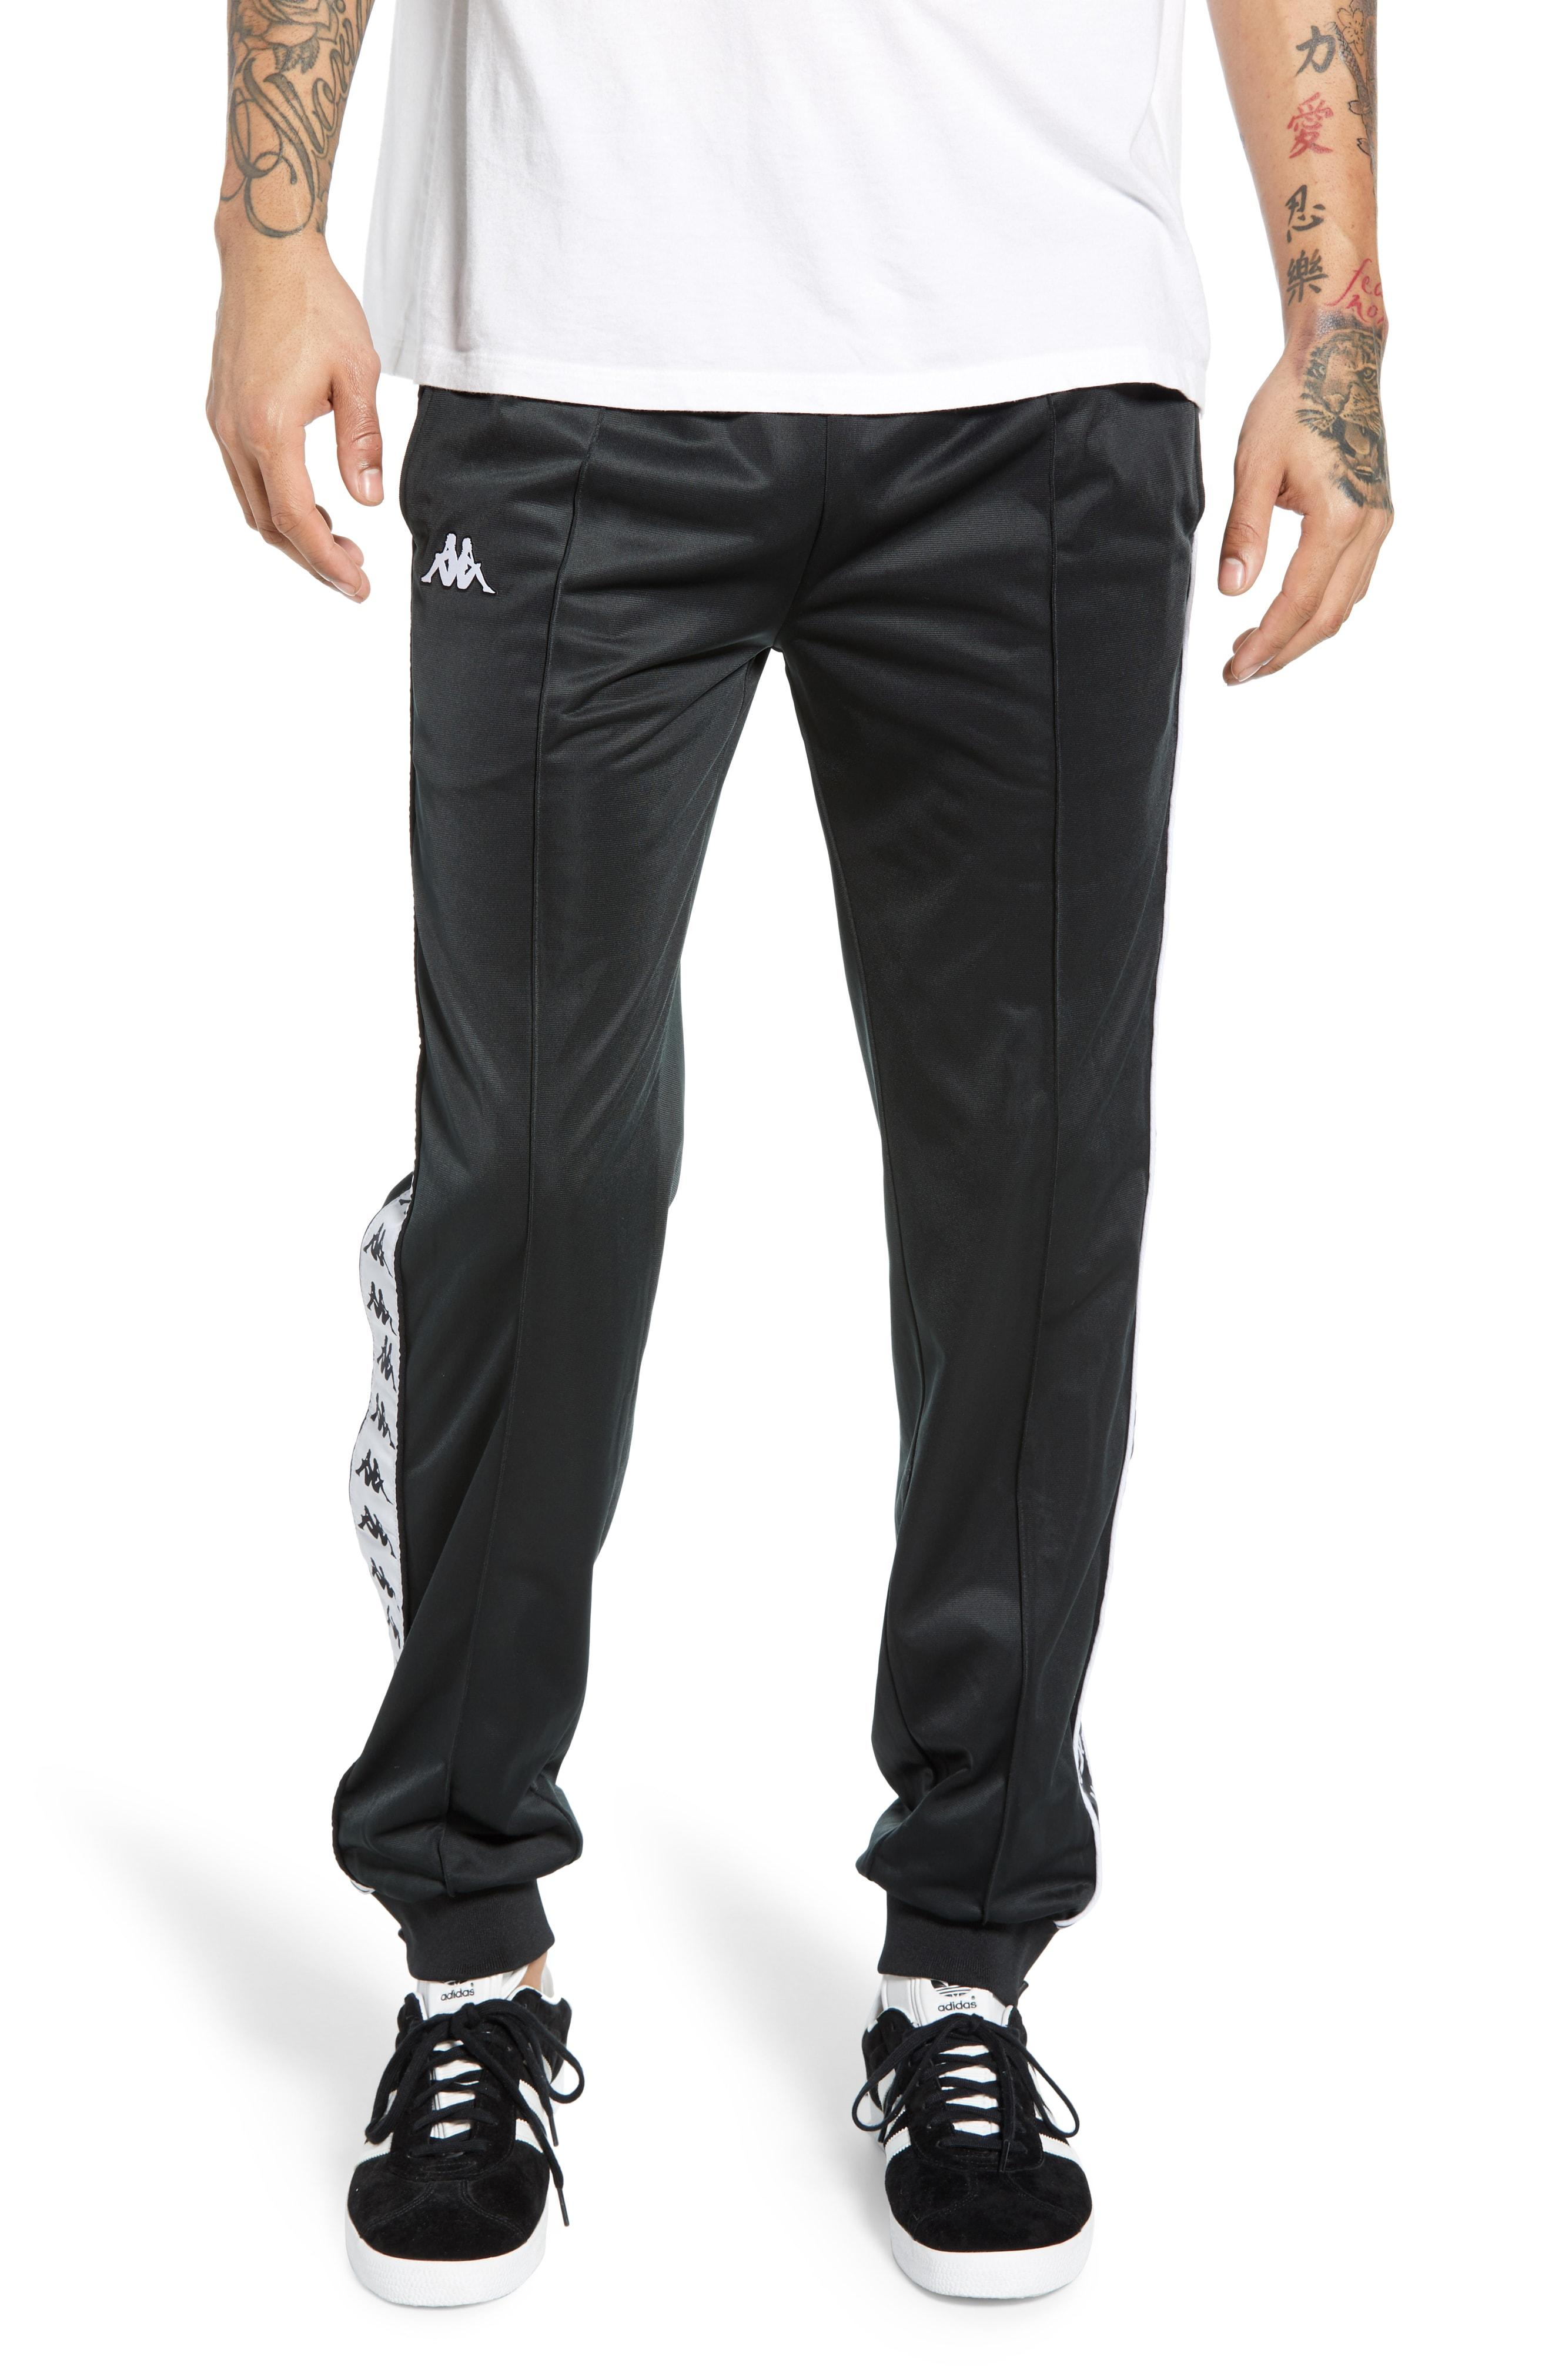 aa4b0707d1 Lyst - Kappa 222 Banda Rastoriazz Slim Fit Track Pants in Black for Men